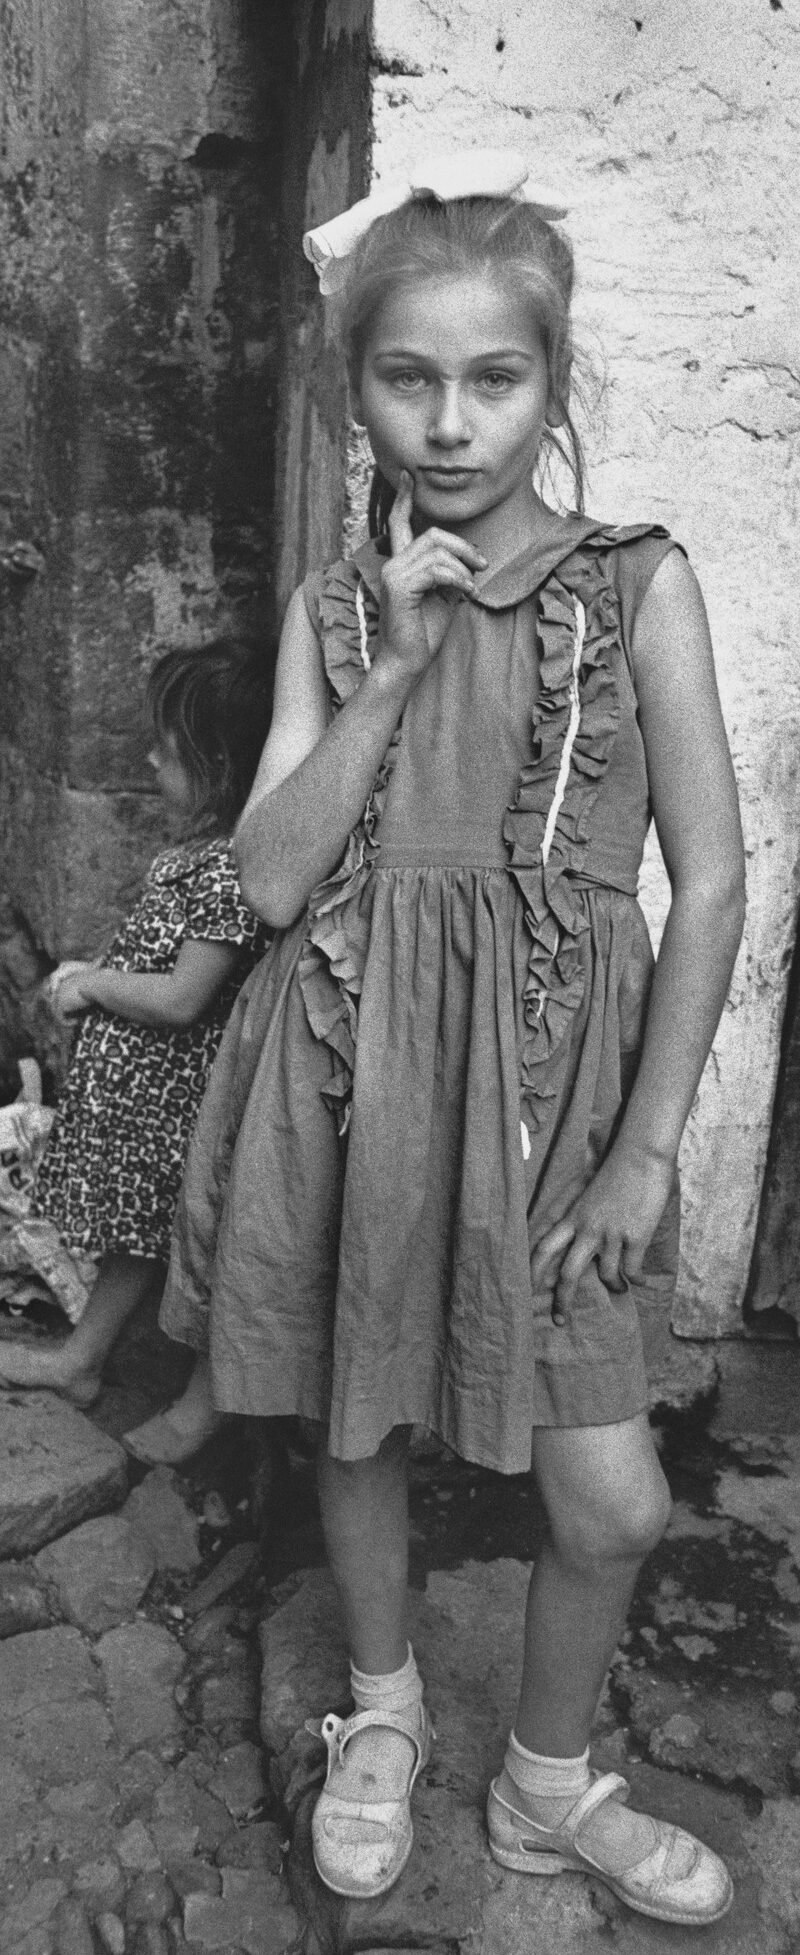 A black and white photograph of a young girl posing with her hip out and hand on her chin. She stares directly into the camera while wearing a ruffled dress, hair bow, and buckled shoes. Behind her is a stone wall that a younger child leans against.